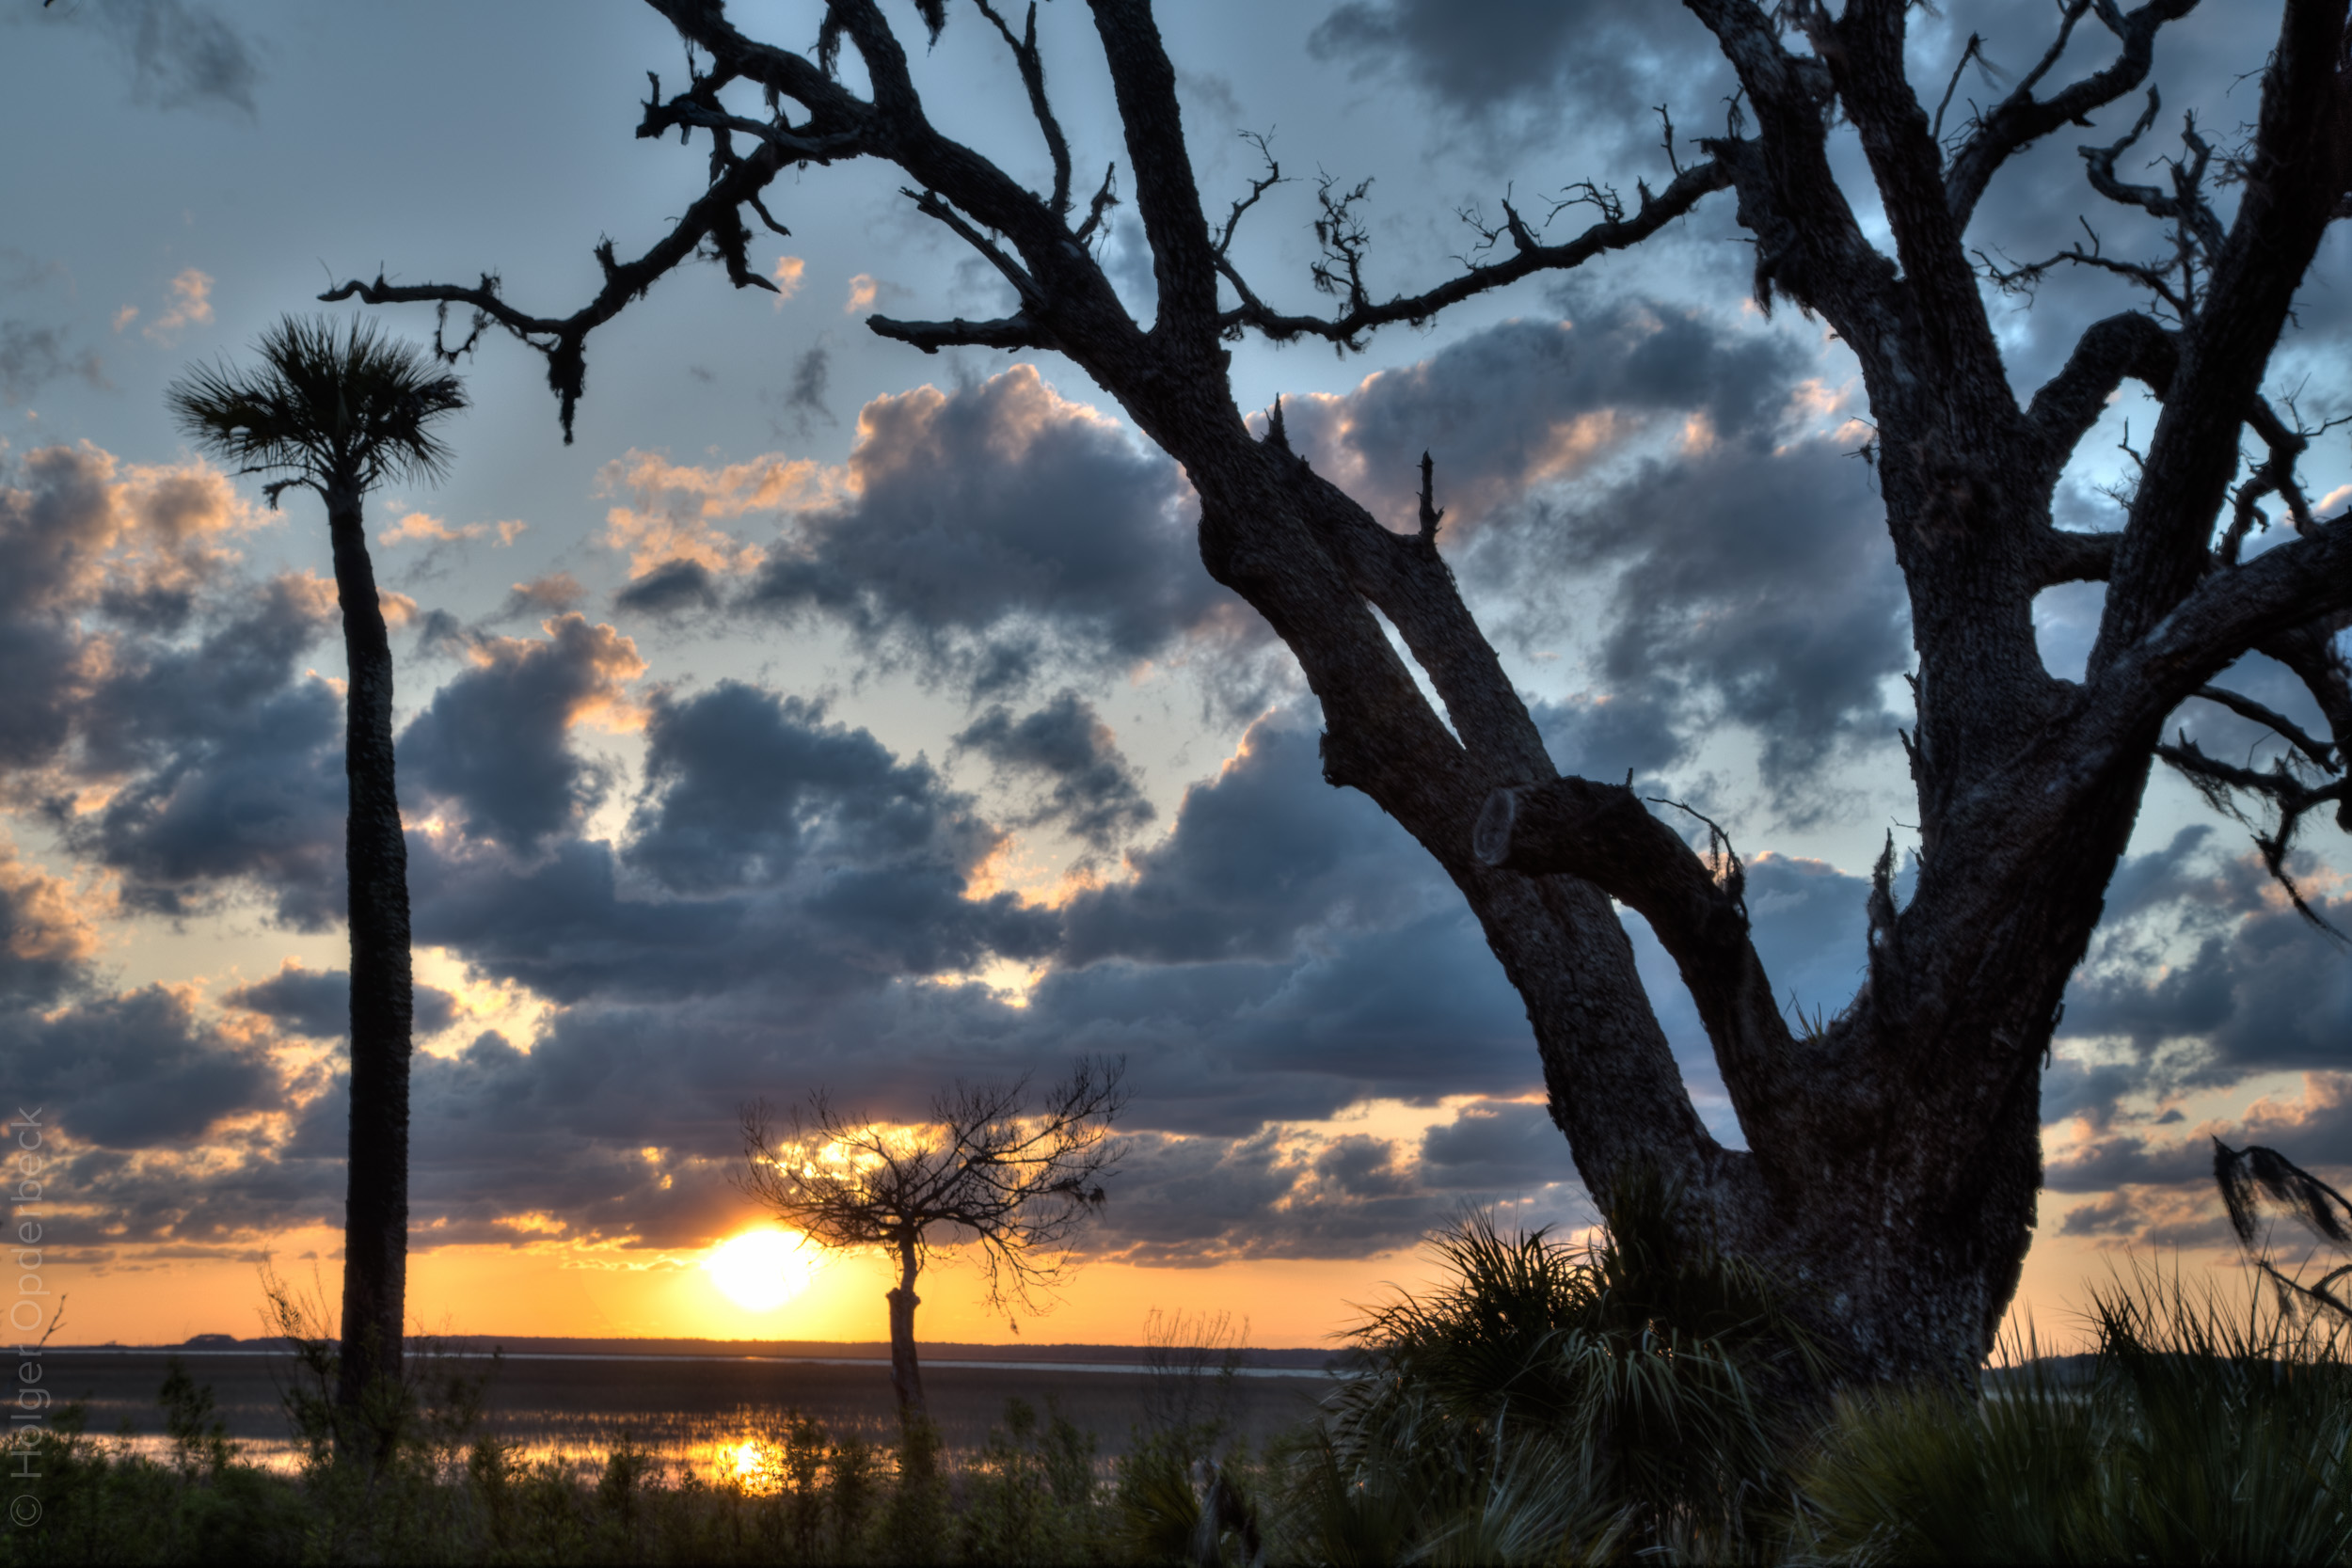 mobius-sunset-dead-tree-palm.jpg